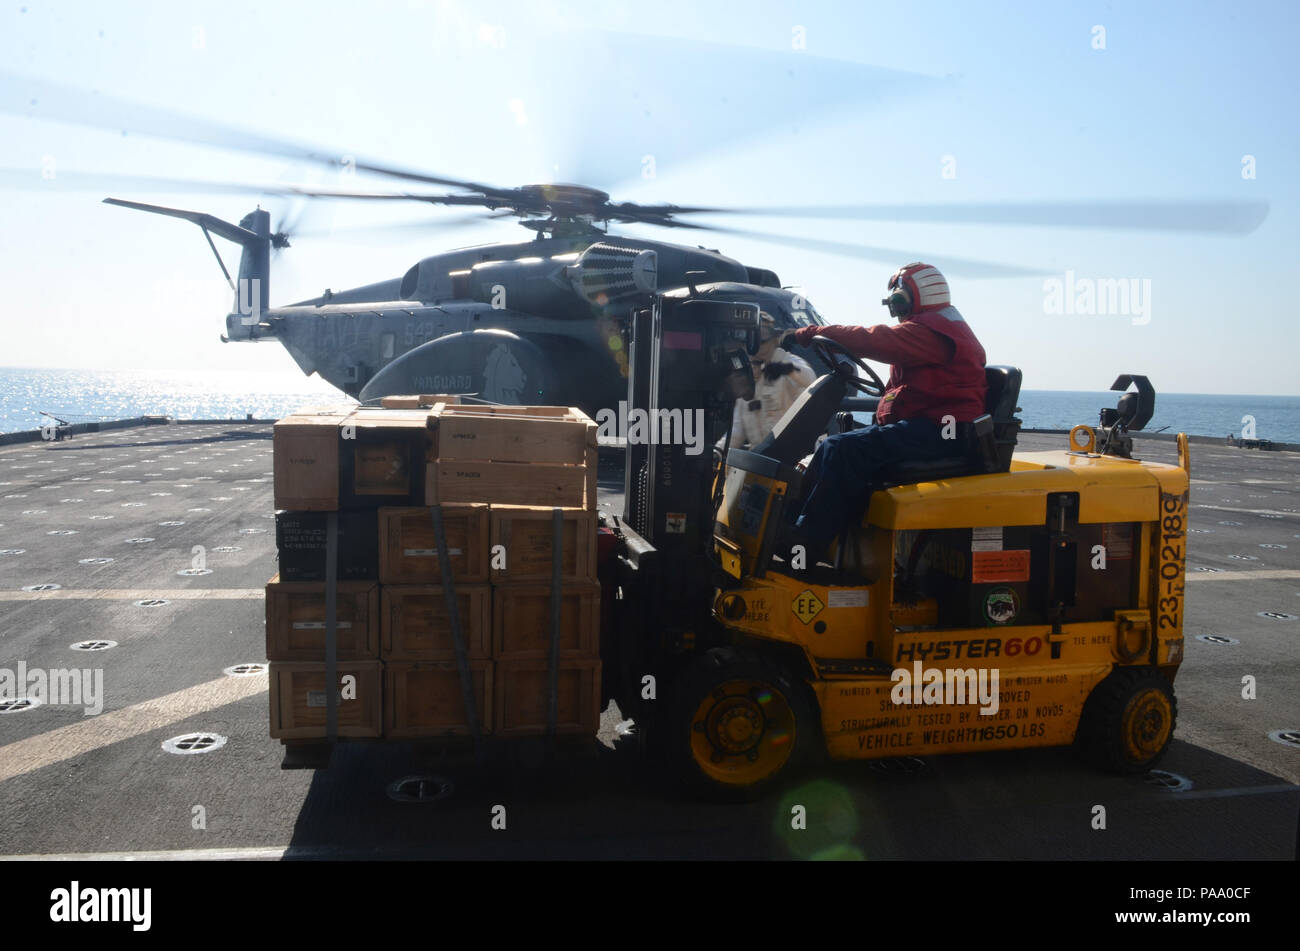 160311-N-WJ640-064 GWANGYANG, South Korea (March 11, 2016)—Civilian Mariner Robert Cheong prepares to load ordnance from dry cargo/ammunition ship USNS Sacagawea (T-AKE 2) to an aircraft for transfer to Marines, March 11. The Sacagewea was one of three MPF ships that offloaded her cargo in support of Exercise Ssang Yong 16, under the Exercise Freedom Banner 16 directive. (U.S. Navy photo by Mass Communication Specialist 3rd Class Madailein Abbott/Released) Stock Photo